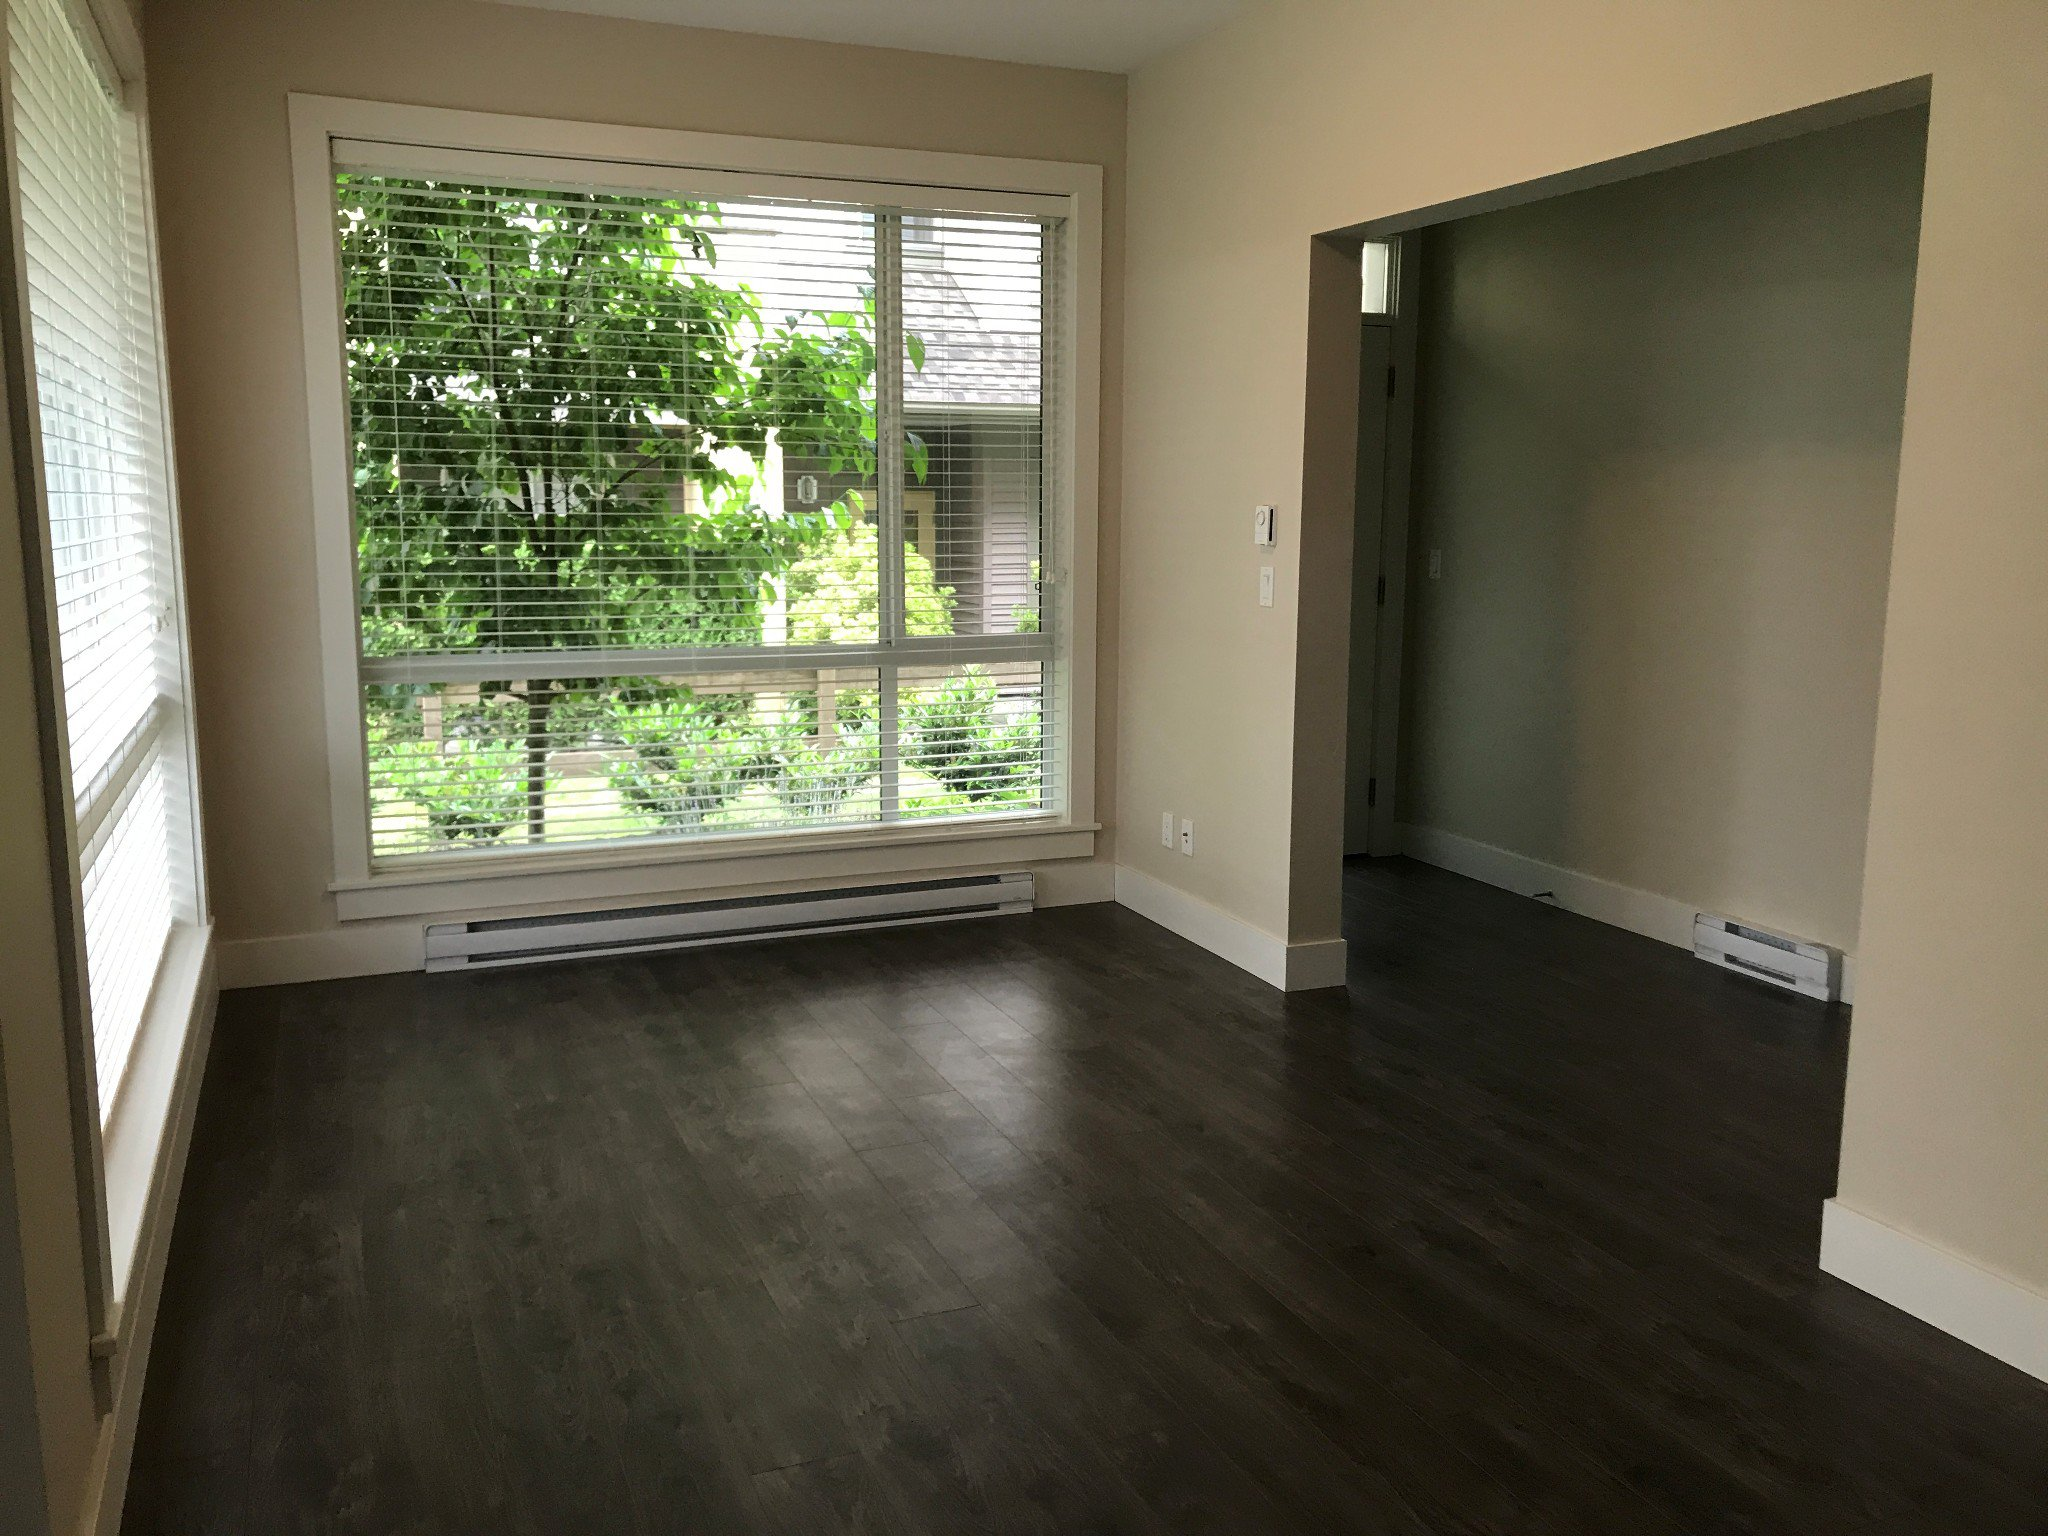 Photo 5: Photos: #38 45615 Tamihi Way in Chilliwack: Garrison Crossing Townhouse for rent